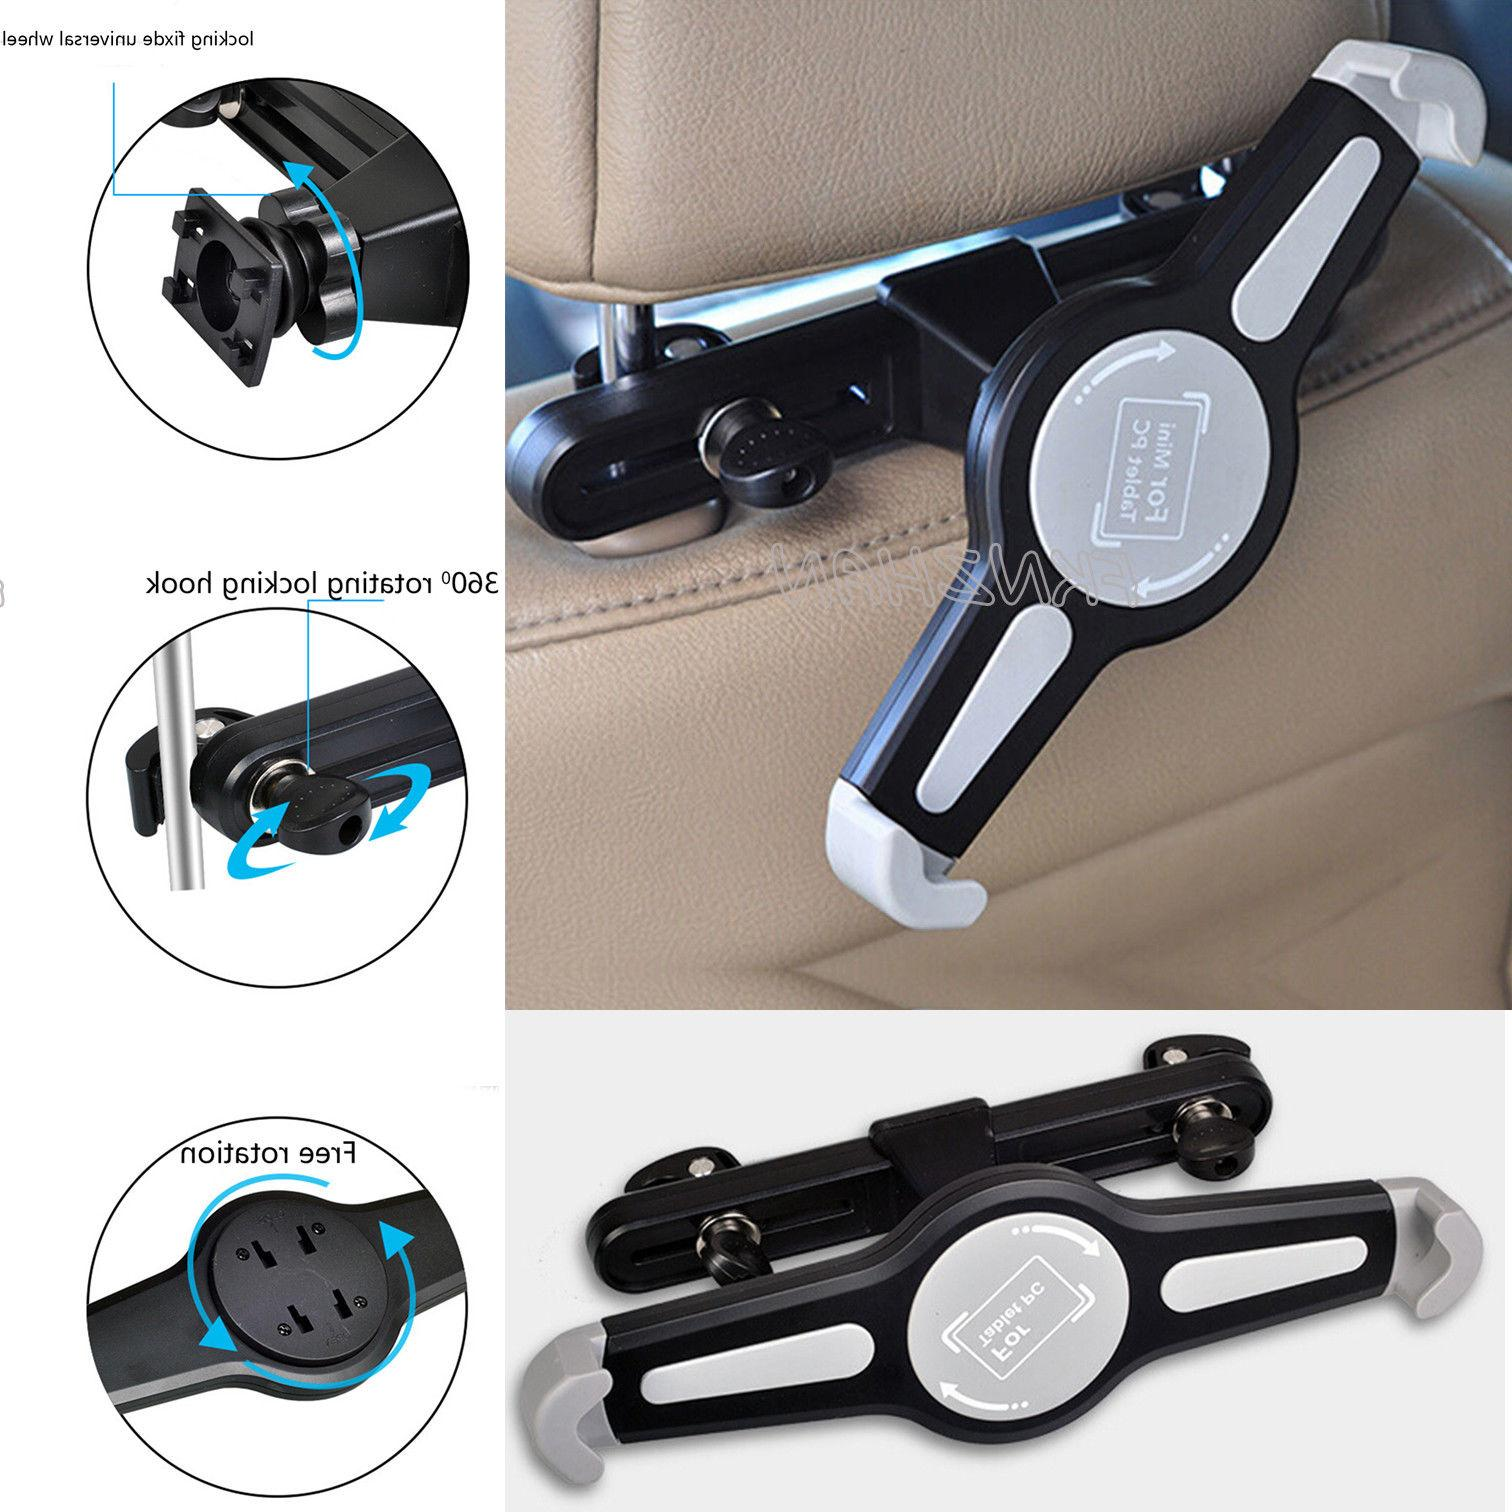 360rotate stand car back seat headrest mount